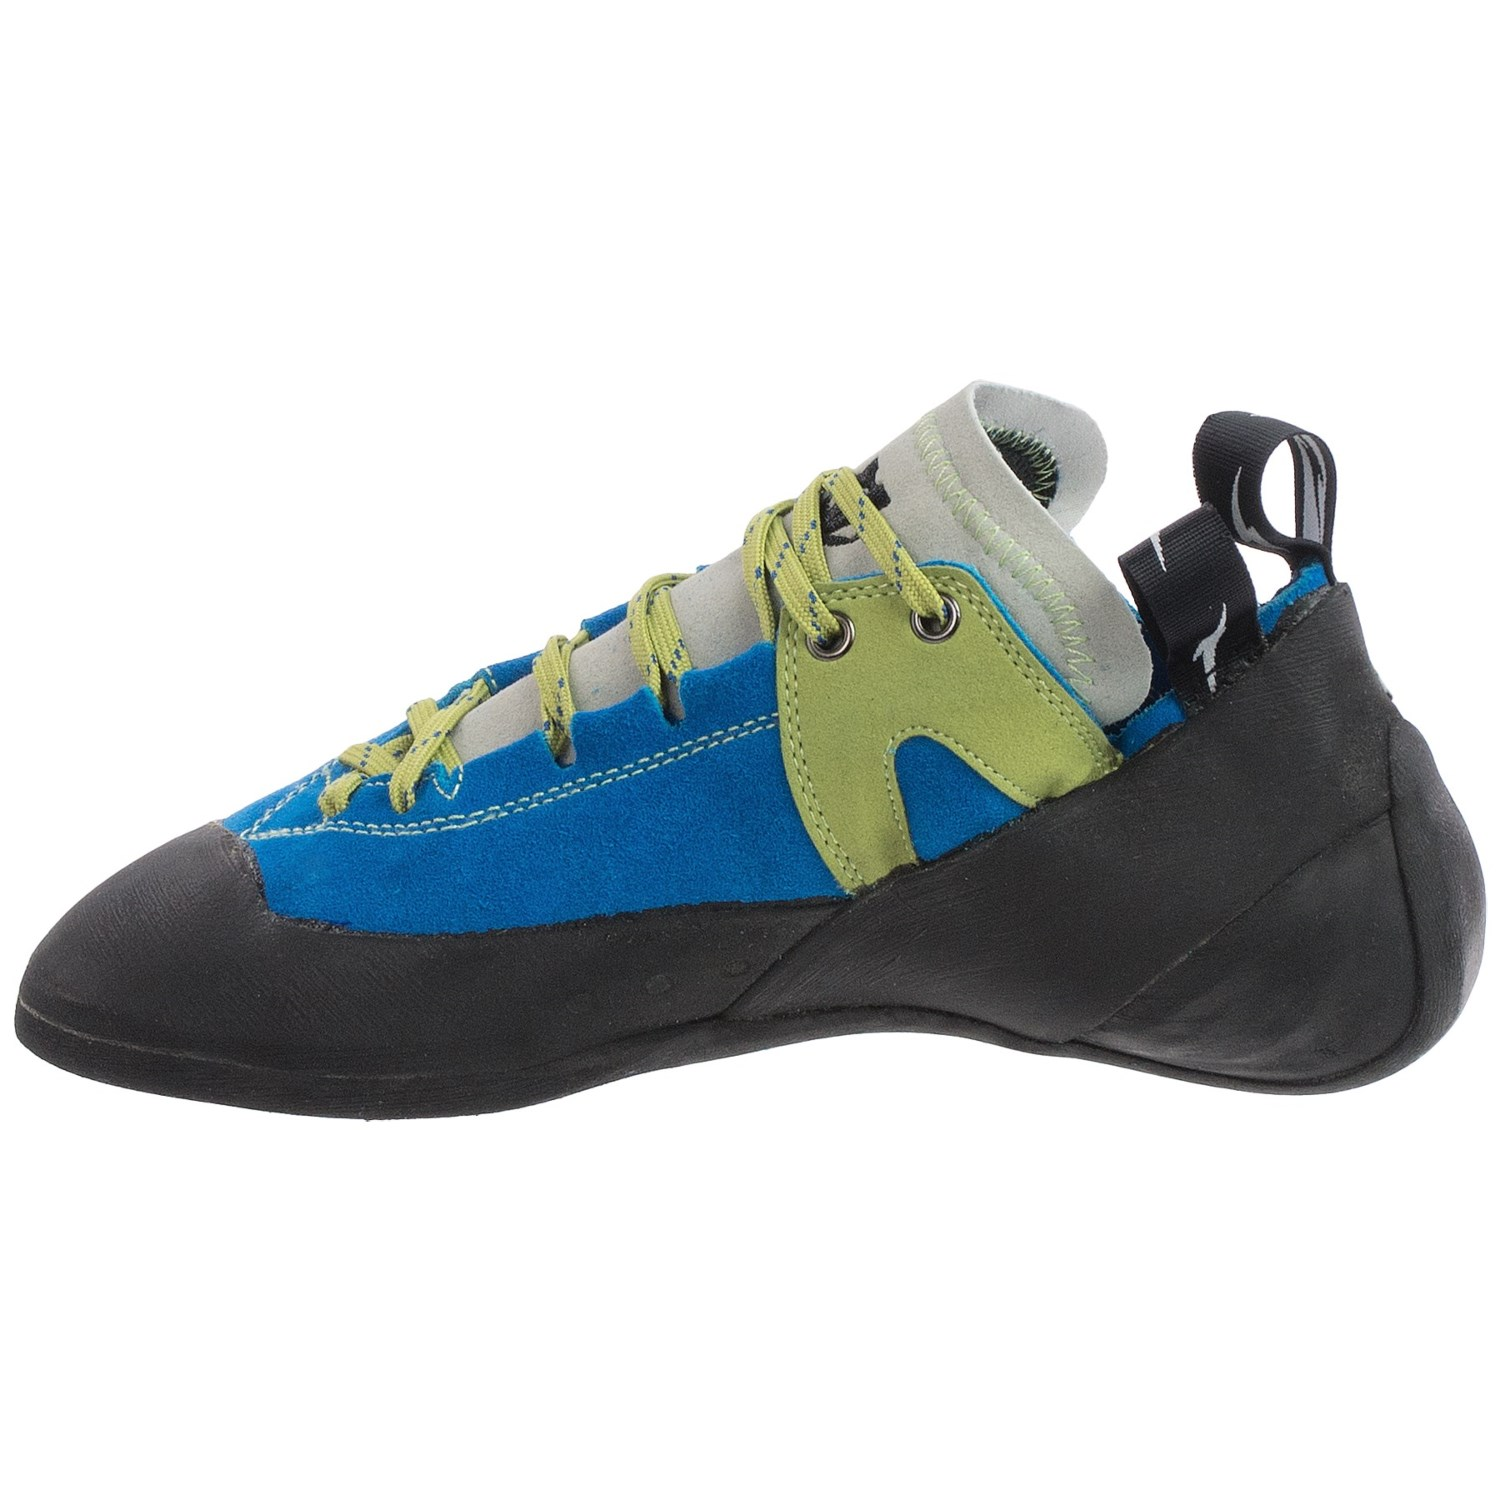 Where To Buy Rock Climbing Shoes In Singapore